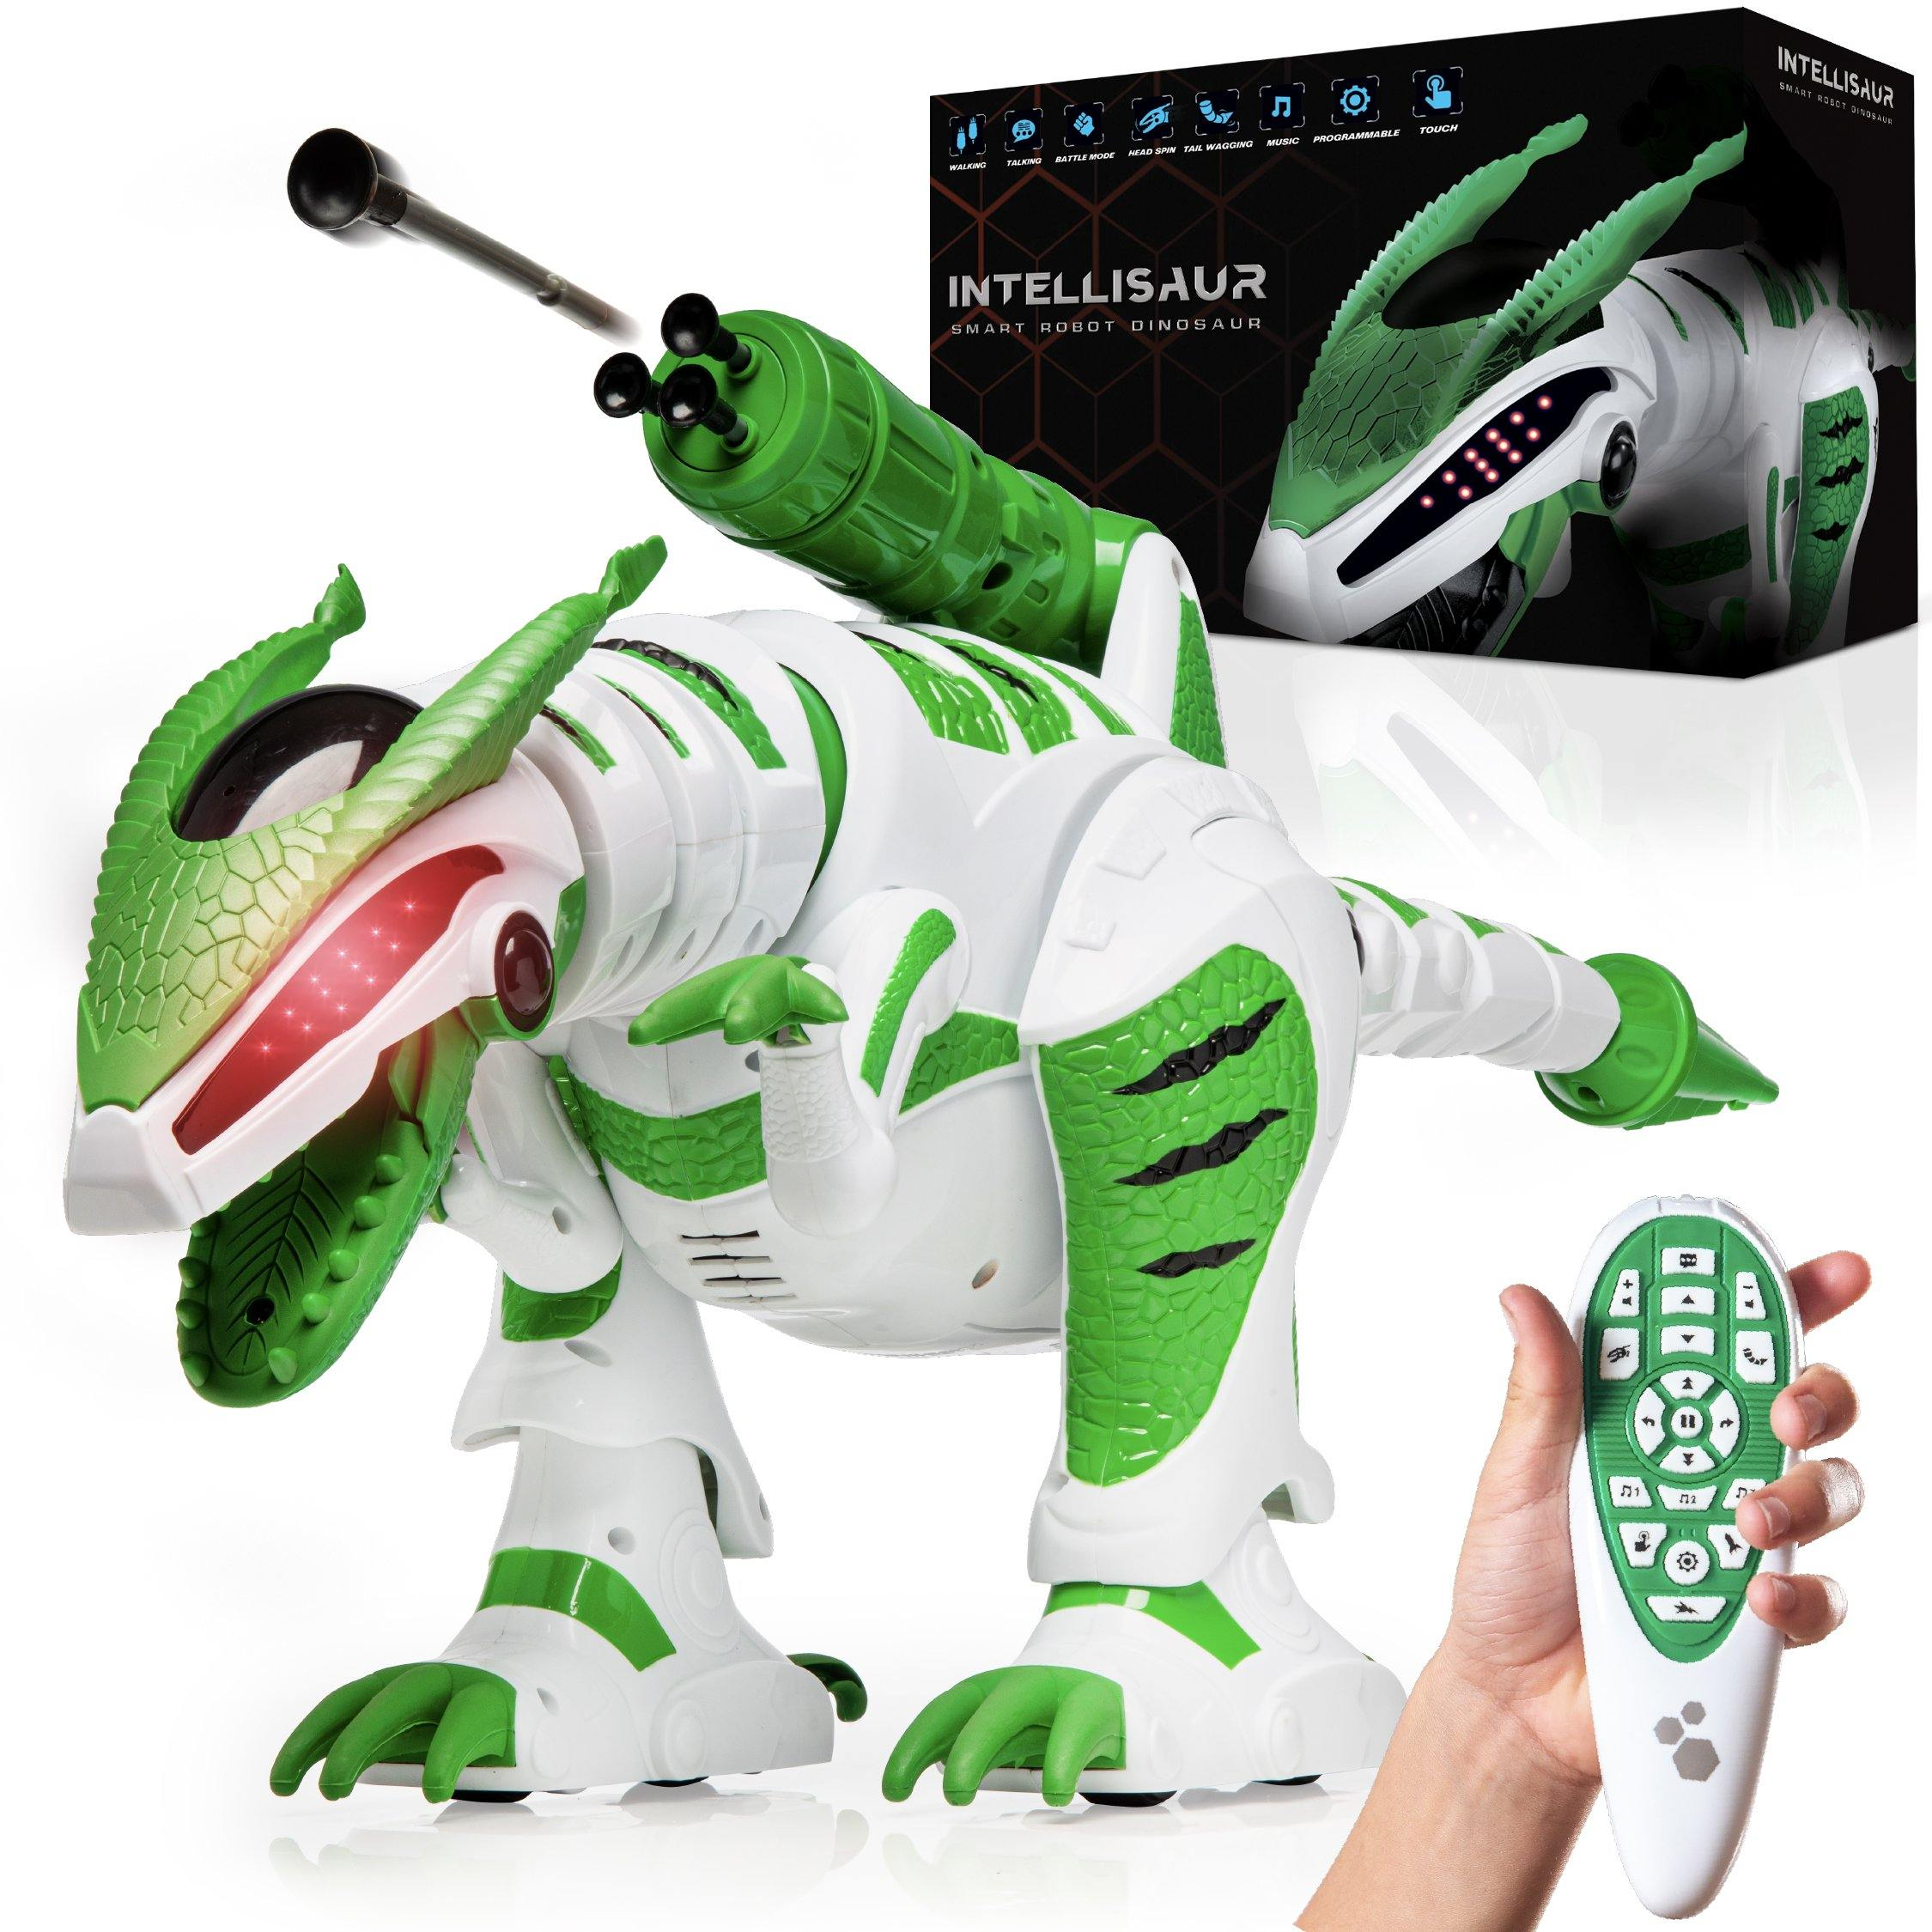 Intellisaur Dinosaur Robot Toy - poweryourfun